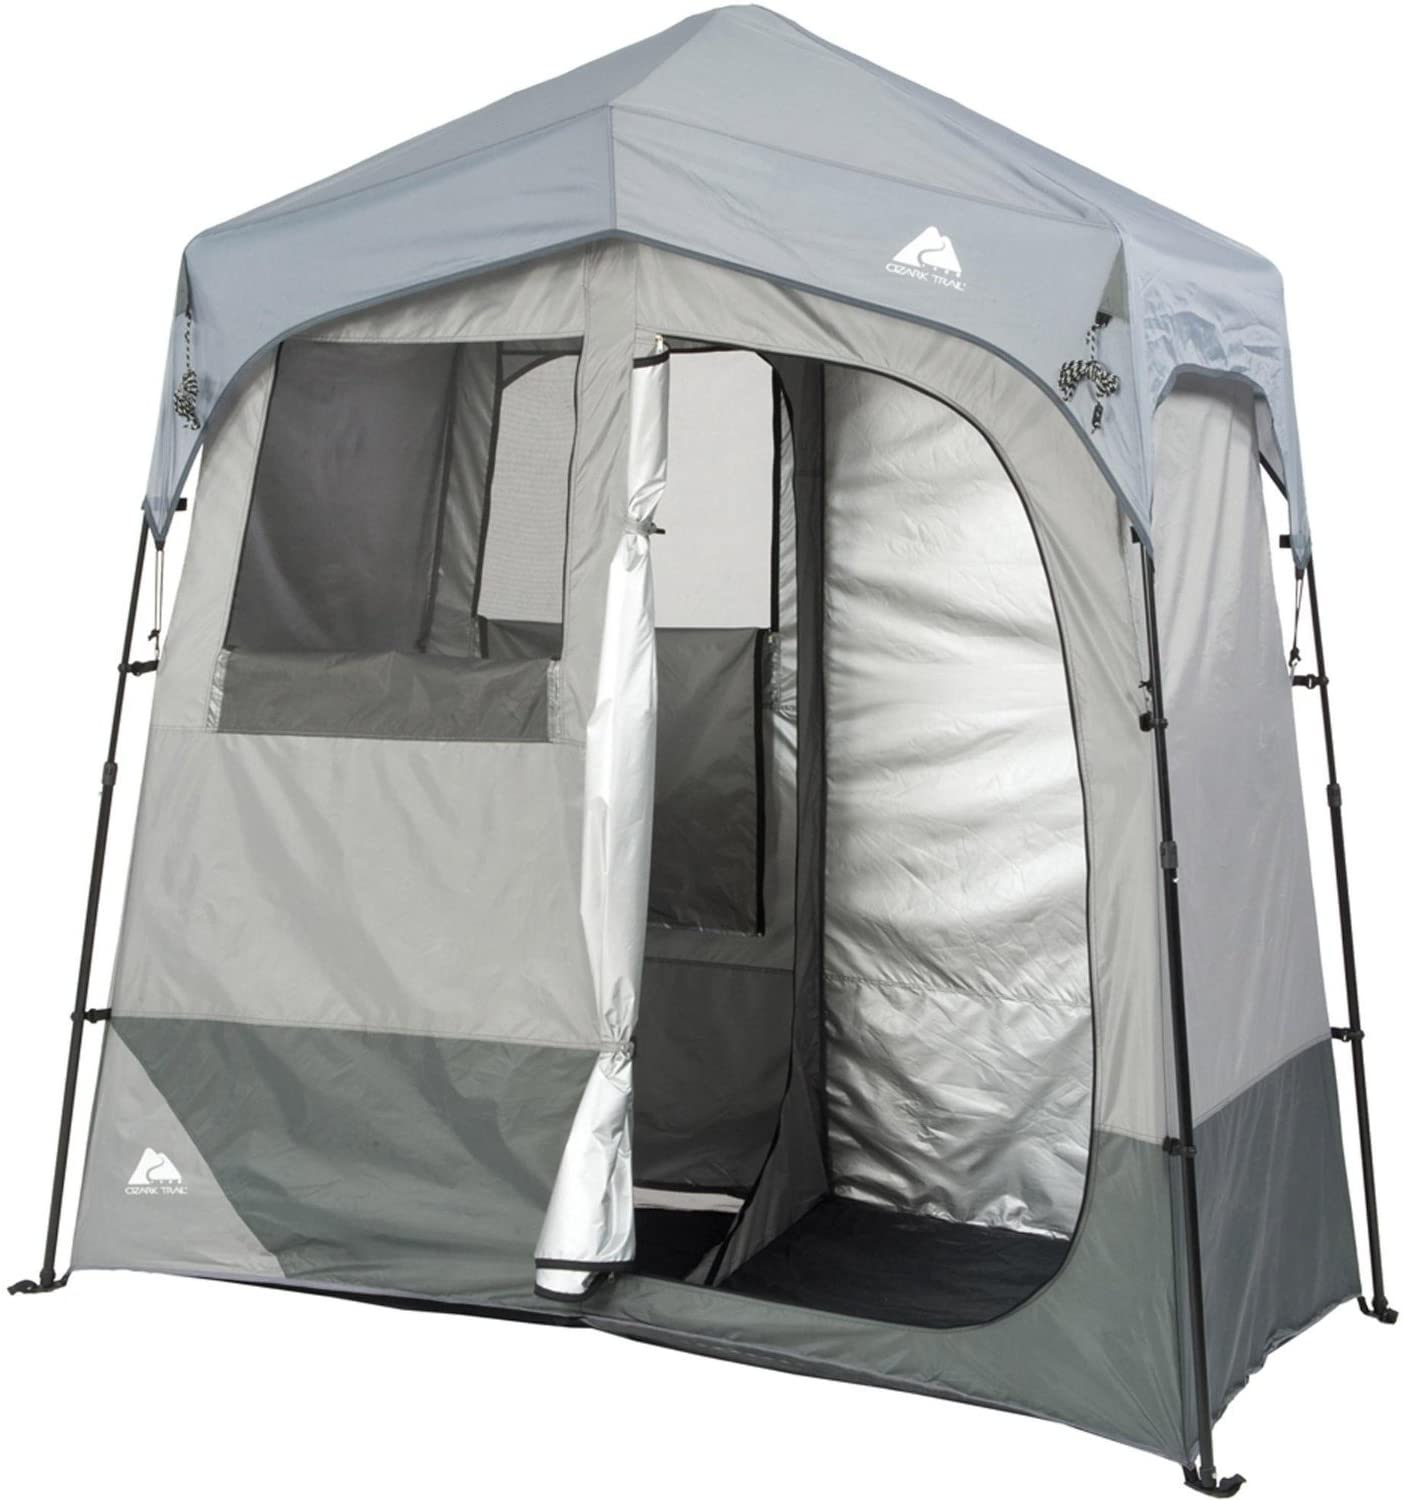 Best Portable Camping Showers 2021 Reviews 40